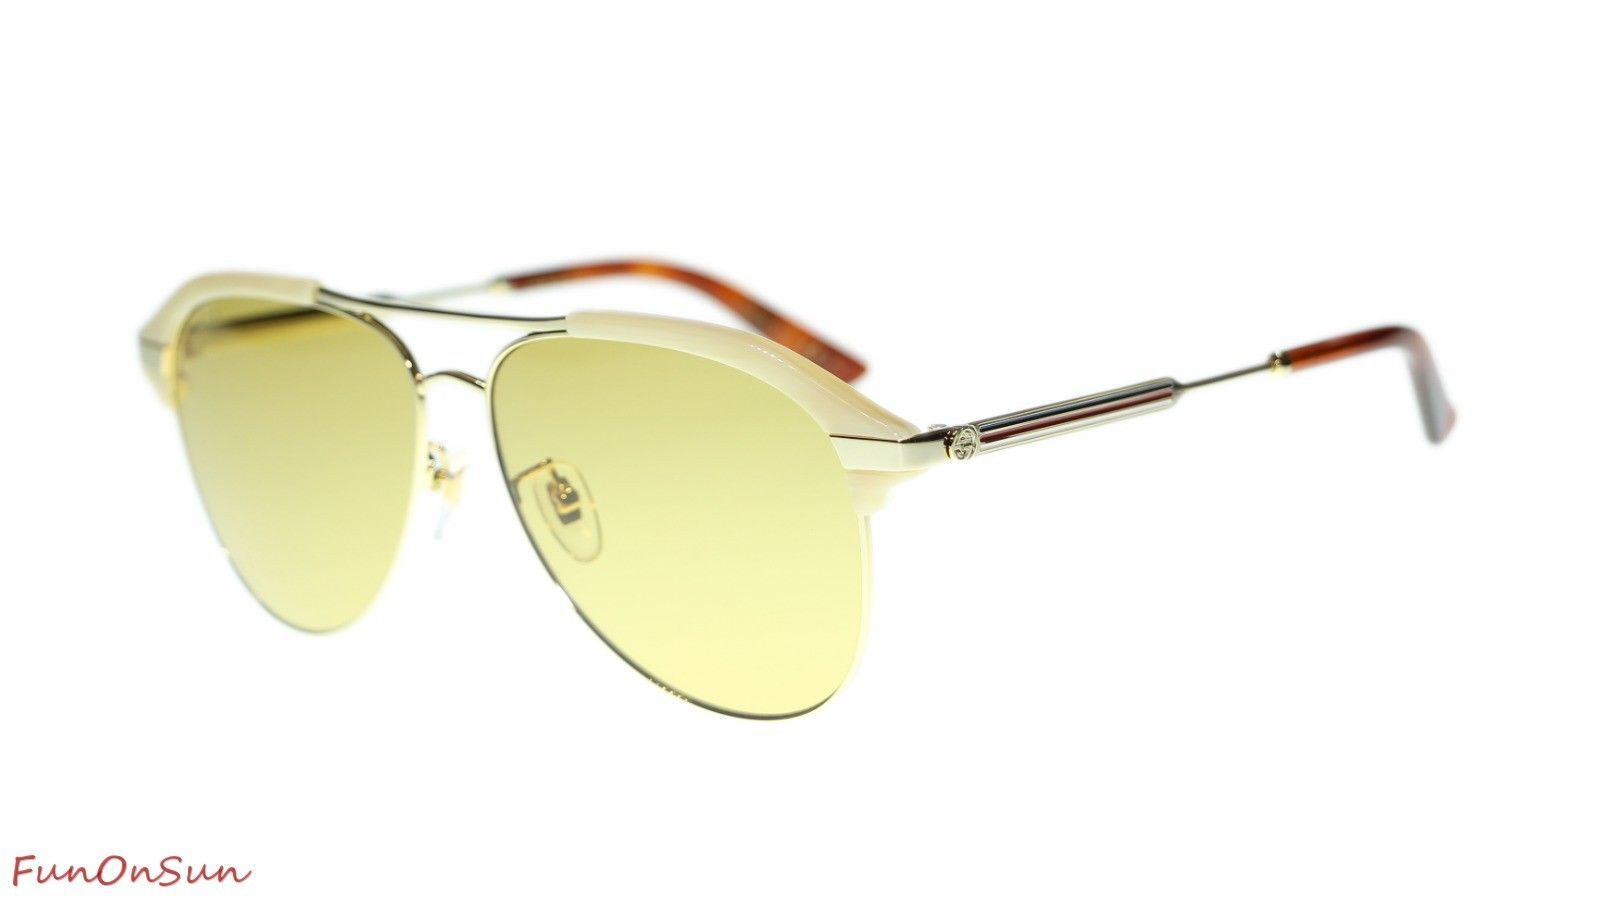 4cf4f03b977 10. 10. Previous. Gucci Men Sunglasses GG0288SA 004 Beige Gold Brown Lens  Aviator 60mm Authentic